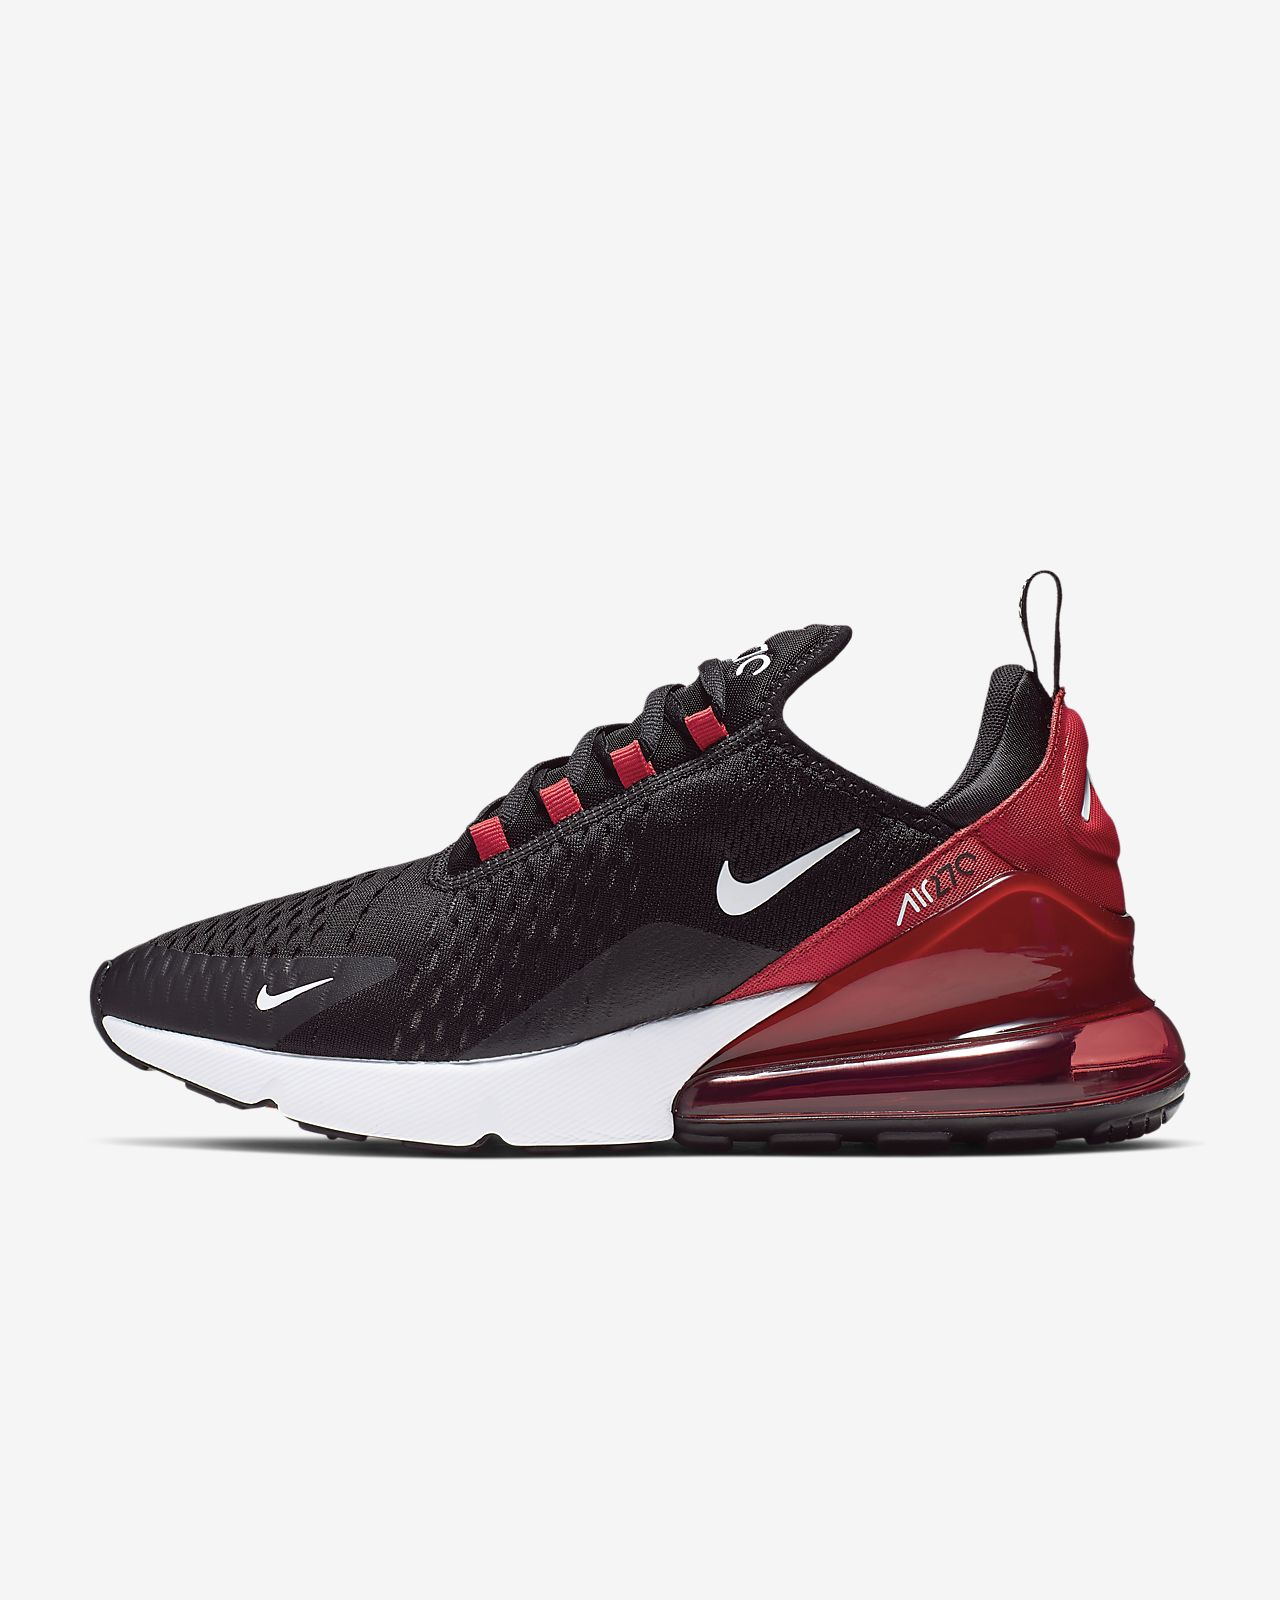 meet 1f6a8 71fb2 Men s Shoe. Nike Air Max 270